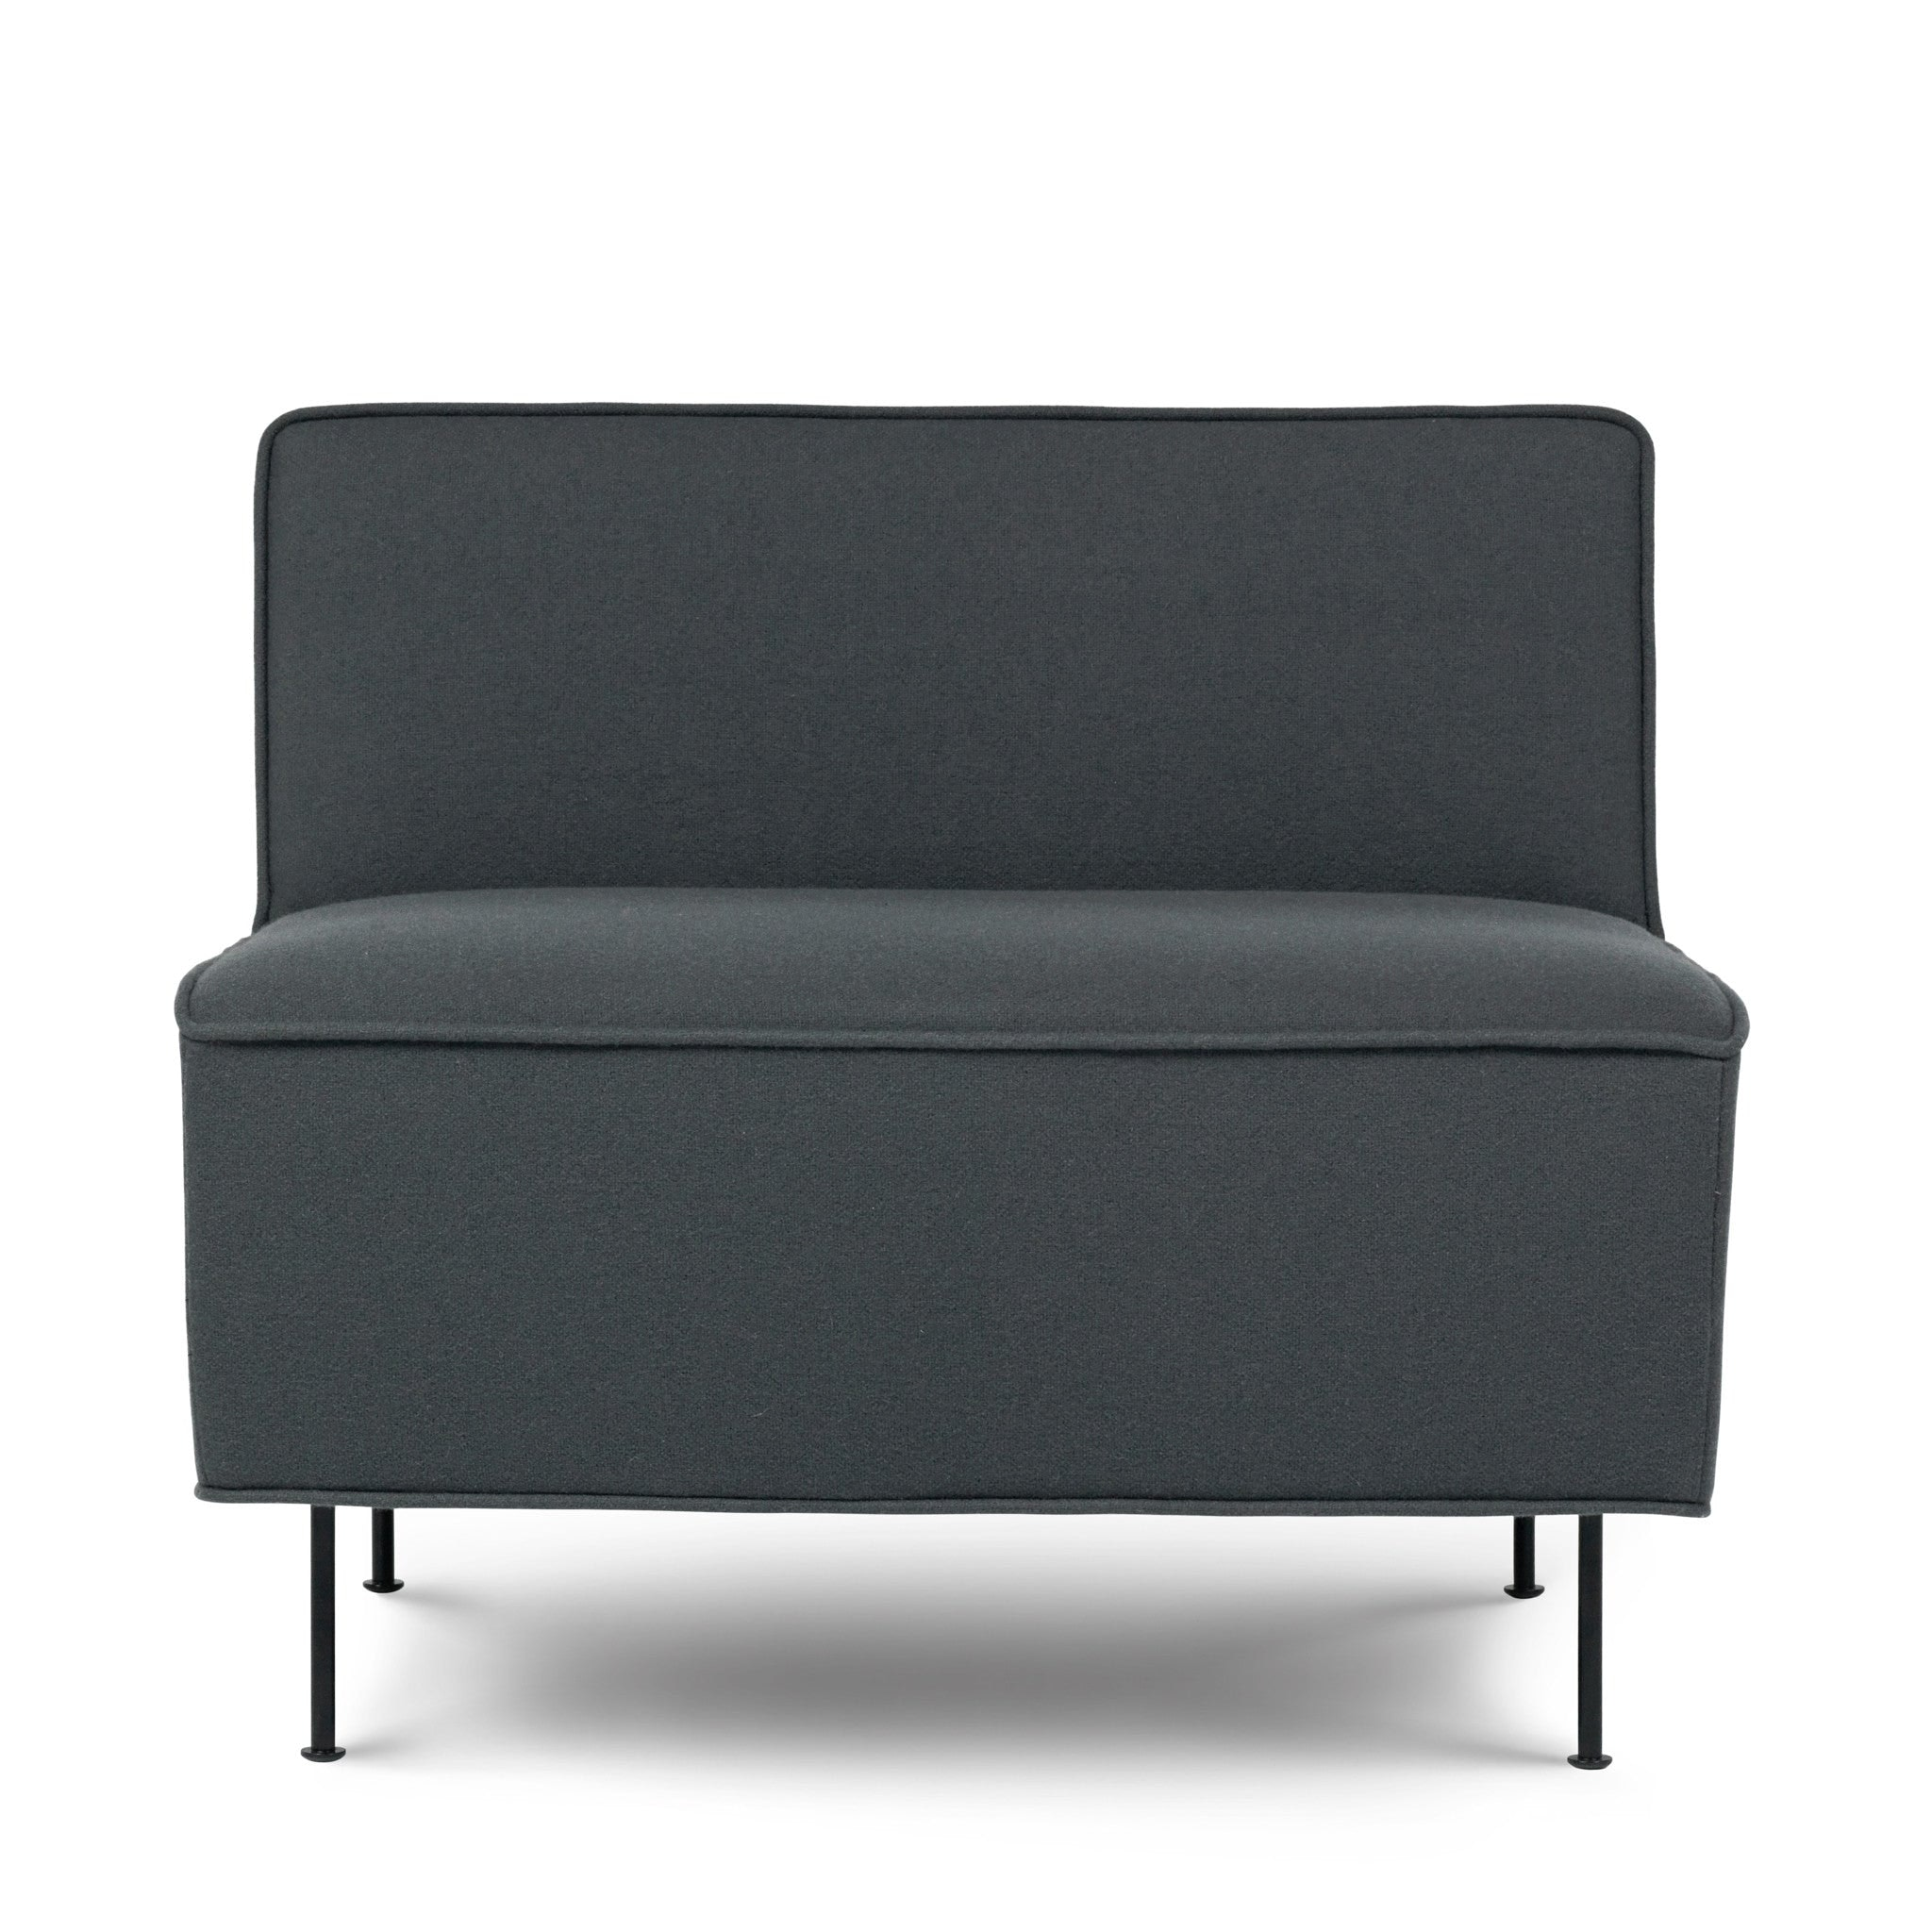 Modern Line Lounge Chair by Greta Grossman